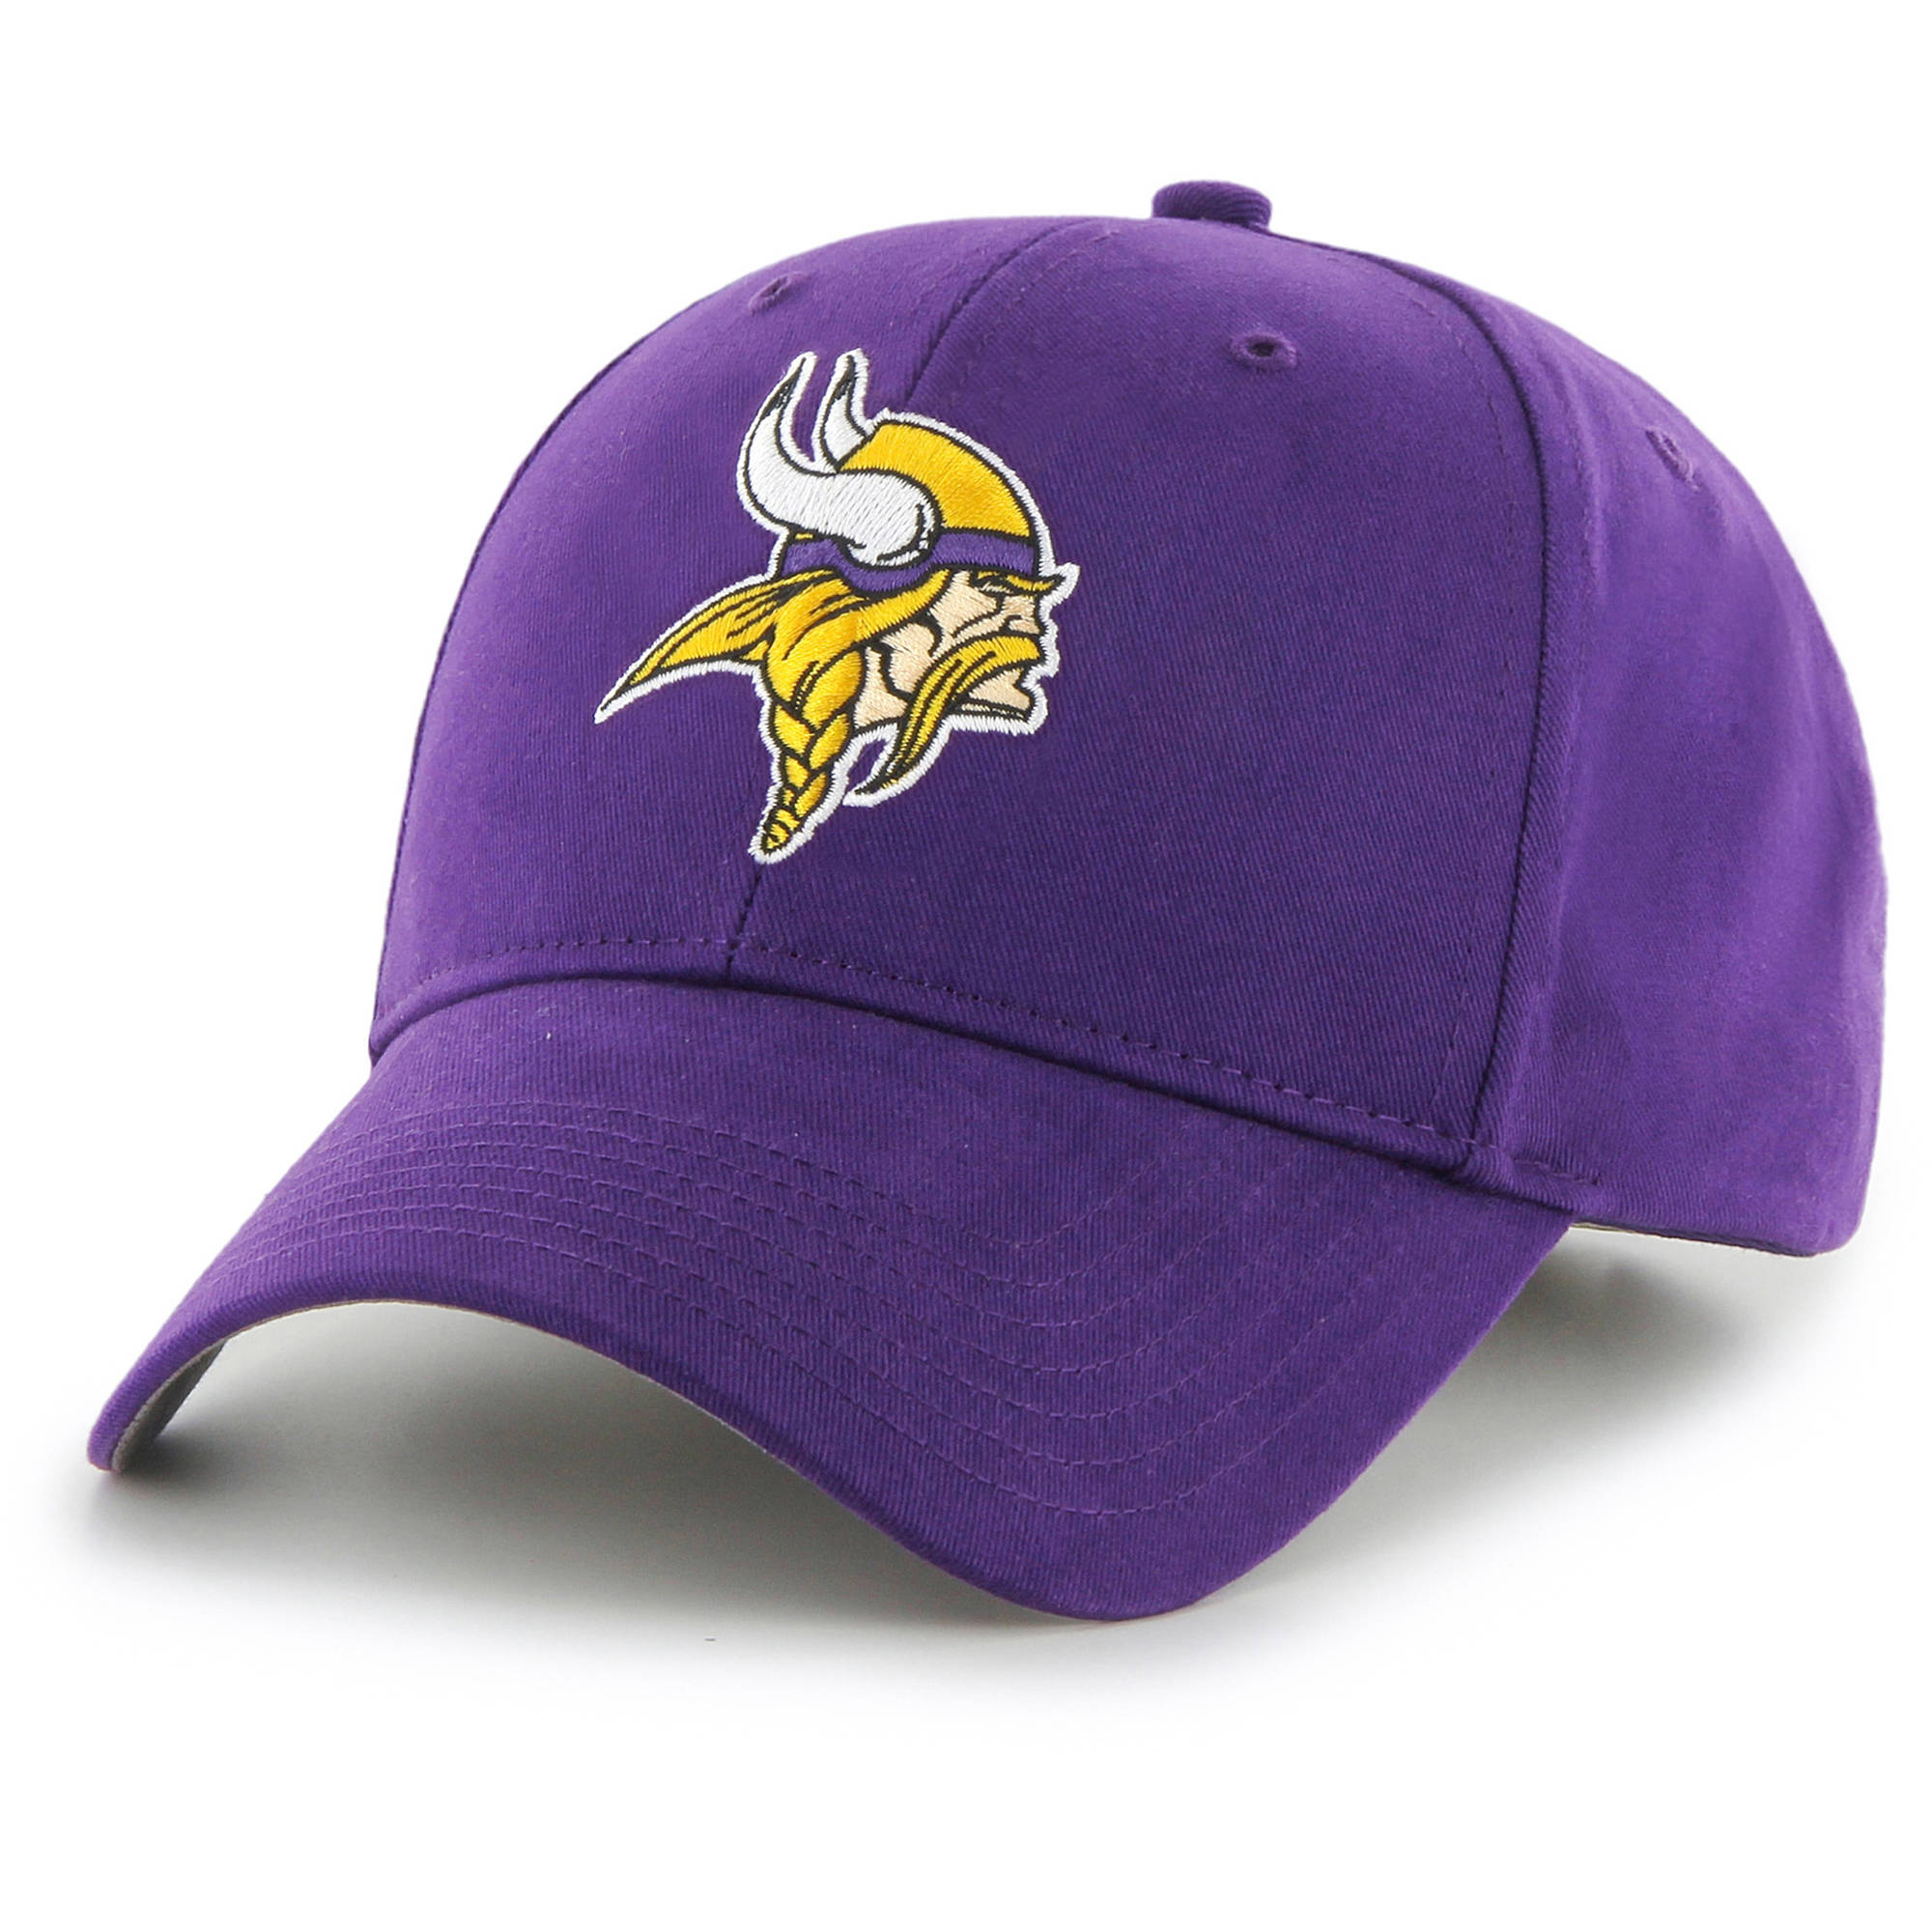 NFL Minnesota Vikings  Basic Cap / Hat  - Fan Favorite